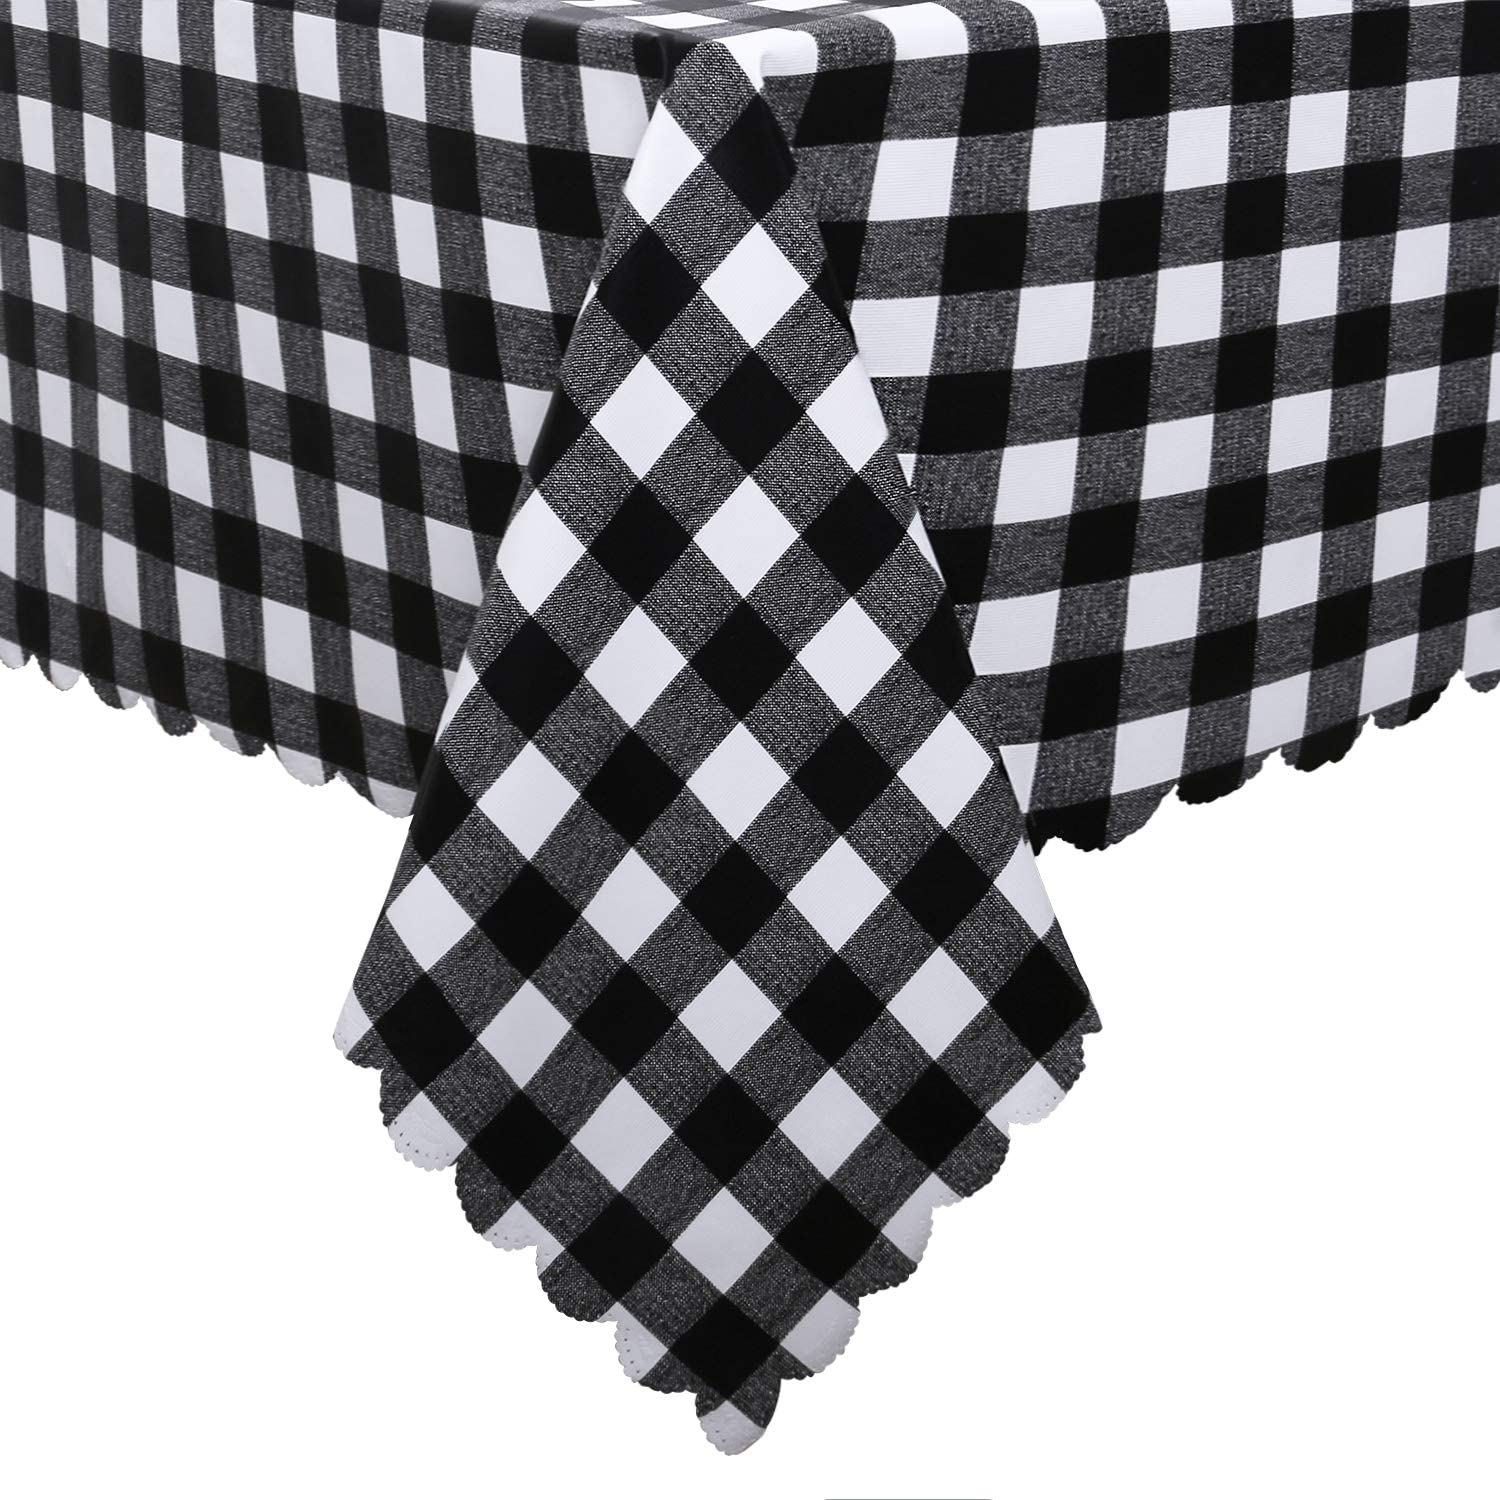 Hiasan Checkered Vinyl Tablecloth Rectangle - 54 x 80 Inch - 100% Waterproof & Stain Resistant Wipeable Plaid PVC Table Cover for Outdoor Picnic/Kitchen Dining/Farmhouse, Black and White